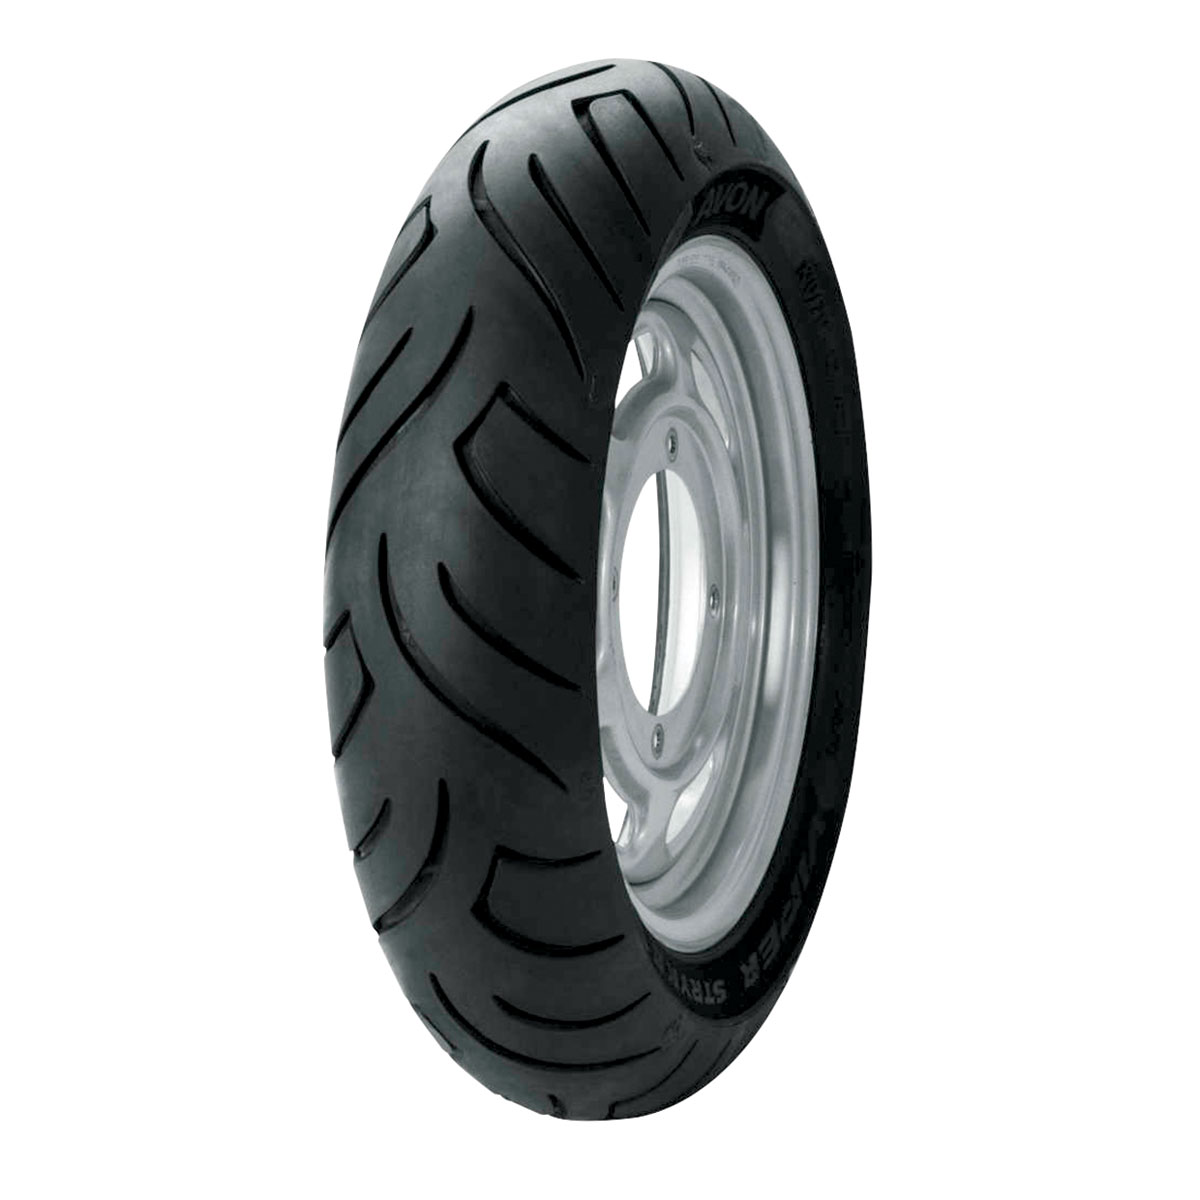 Avon AM63 Viper Stryke 140/70-12 Scooter Rear Tire